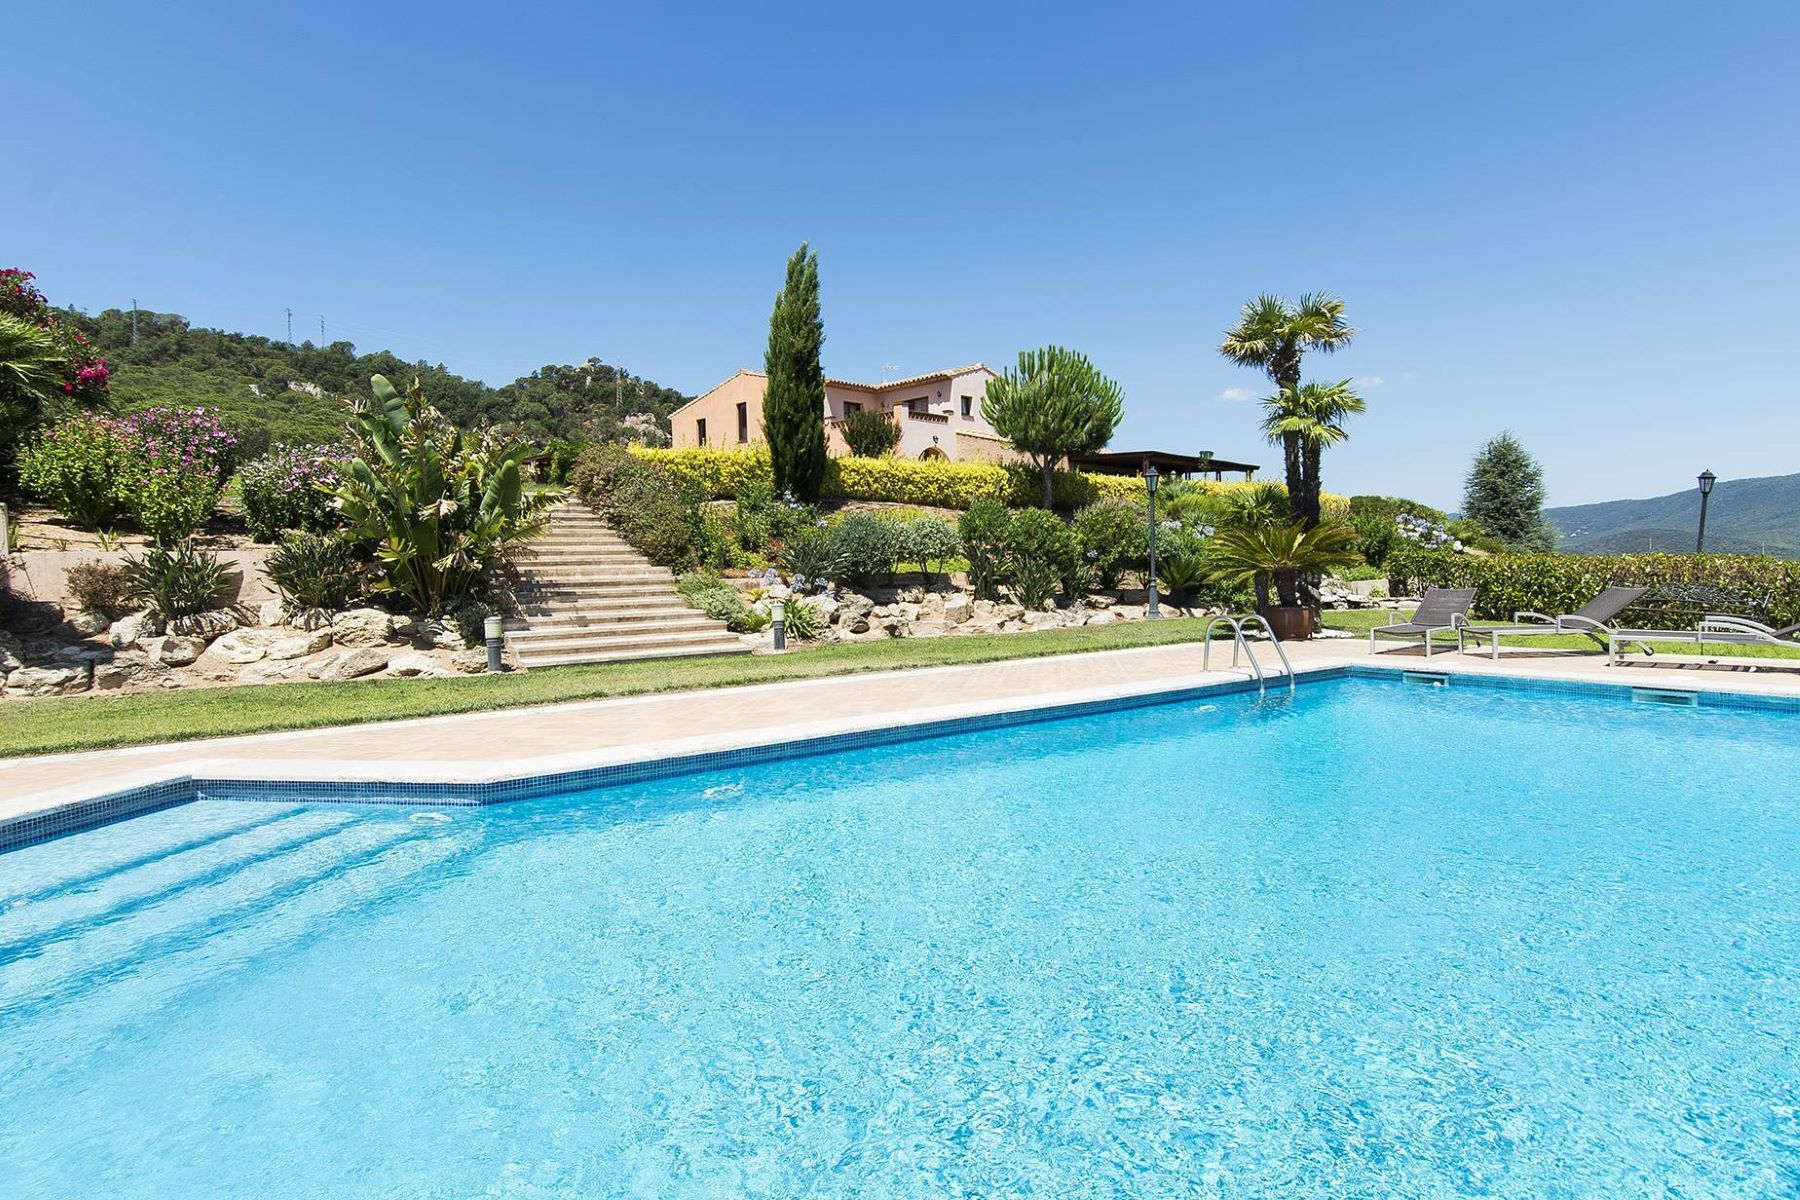 Single Family Home for Sale at Masia with amazing views Sant Feliu De Guixols, Costa Brava, 17220 Spain